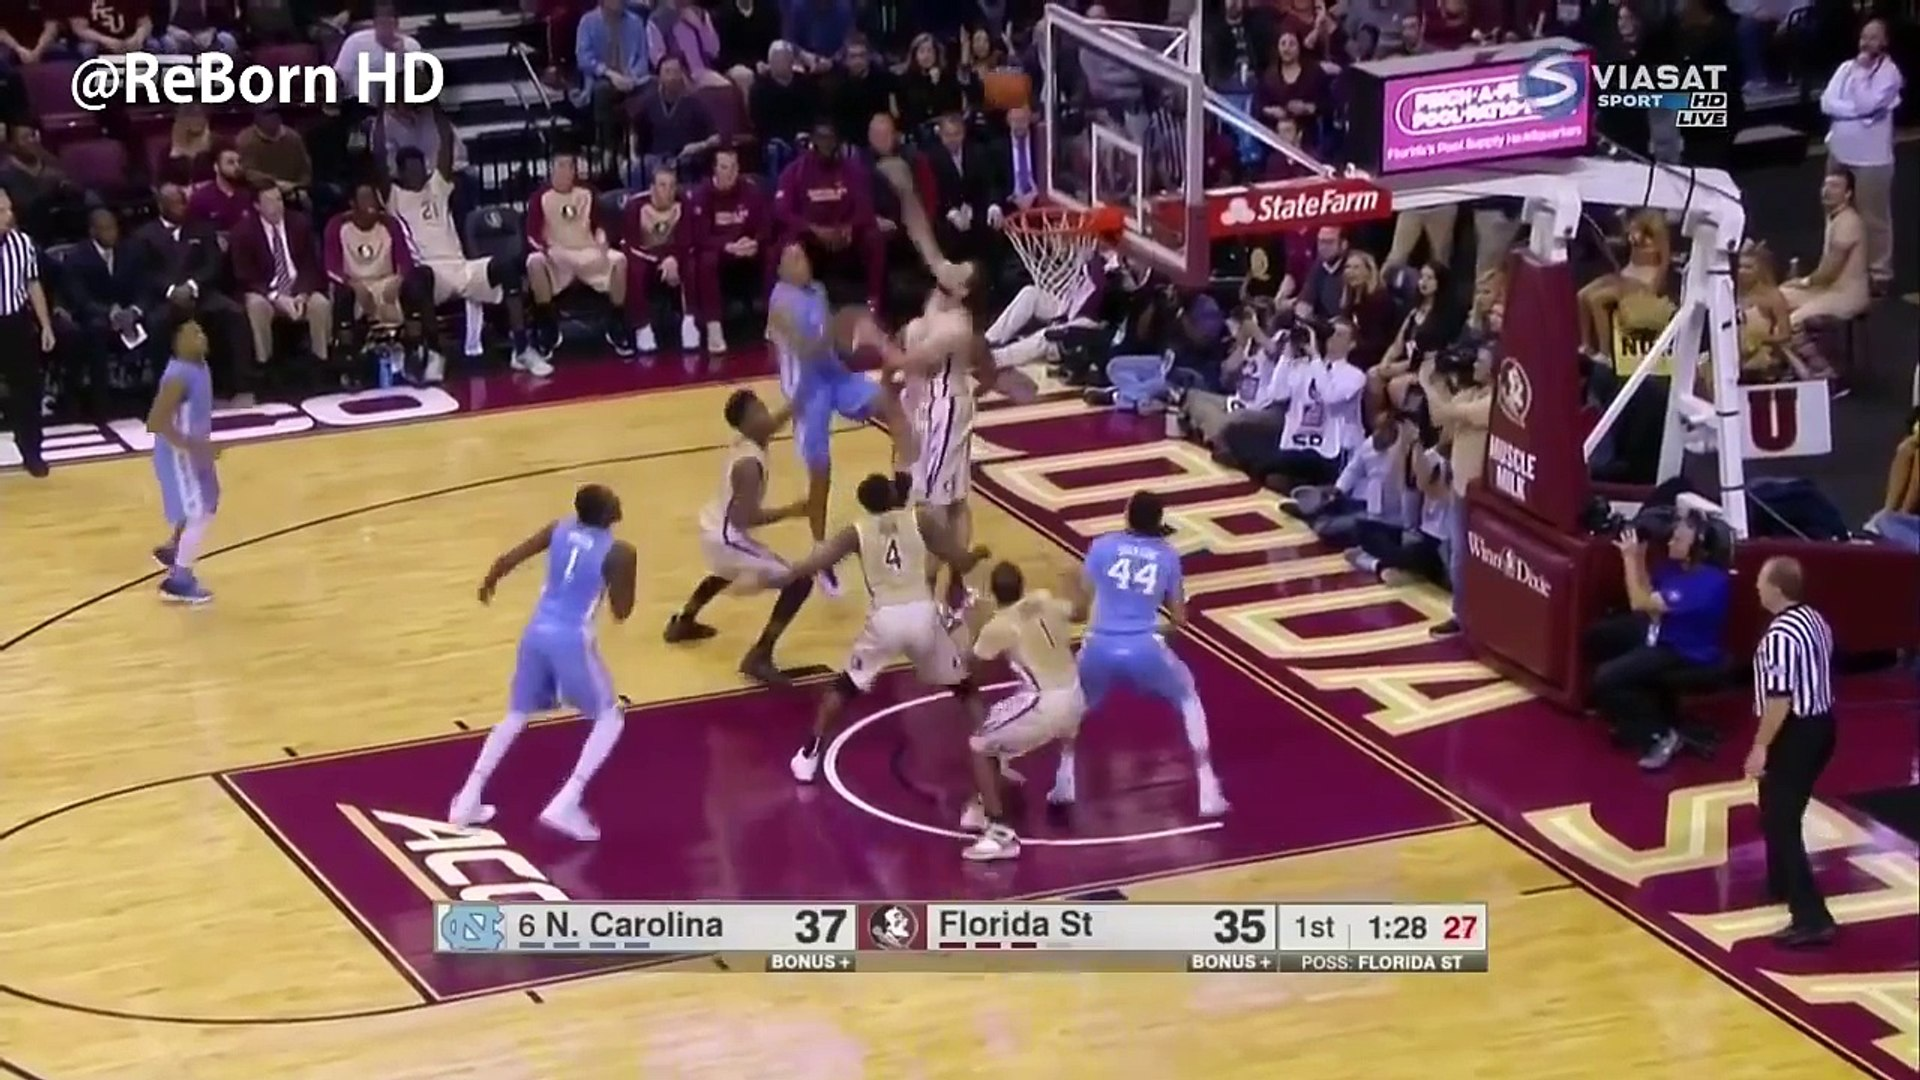 Brice Johnson UNC Highlights 1.4.16 At. Florida State - UNREAL 39 Pts, 23 Rebs, 3 Blks, Tenacious!